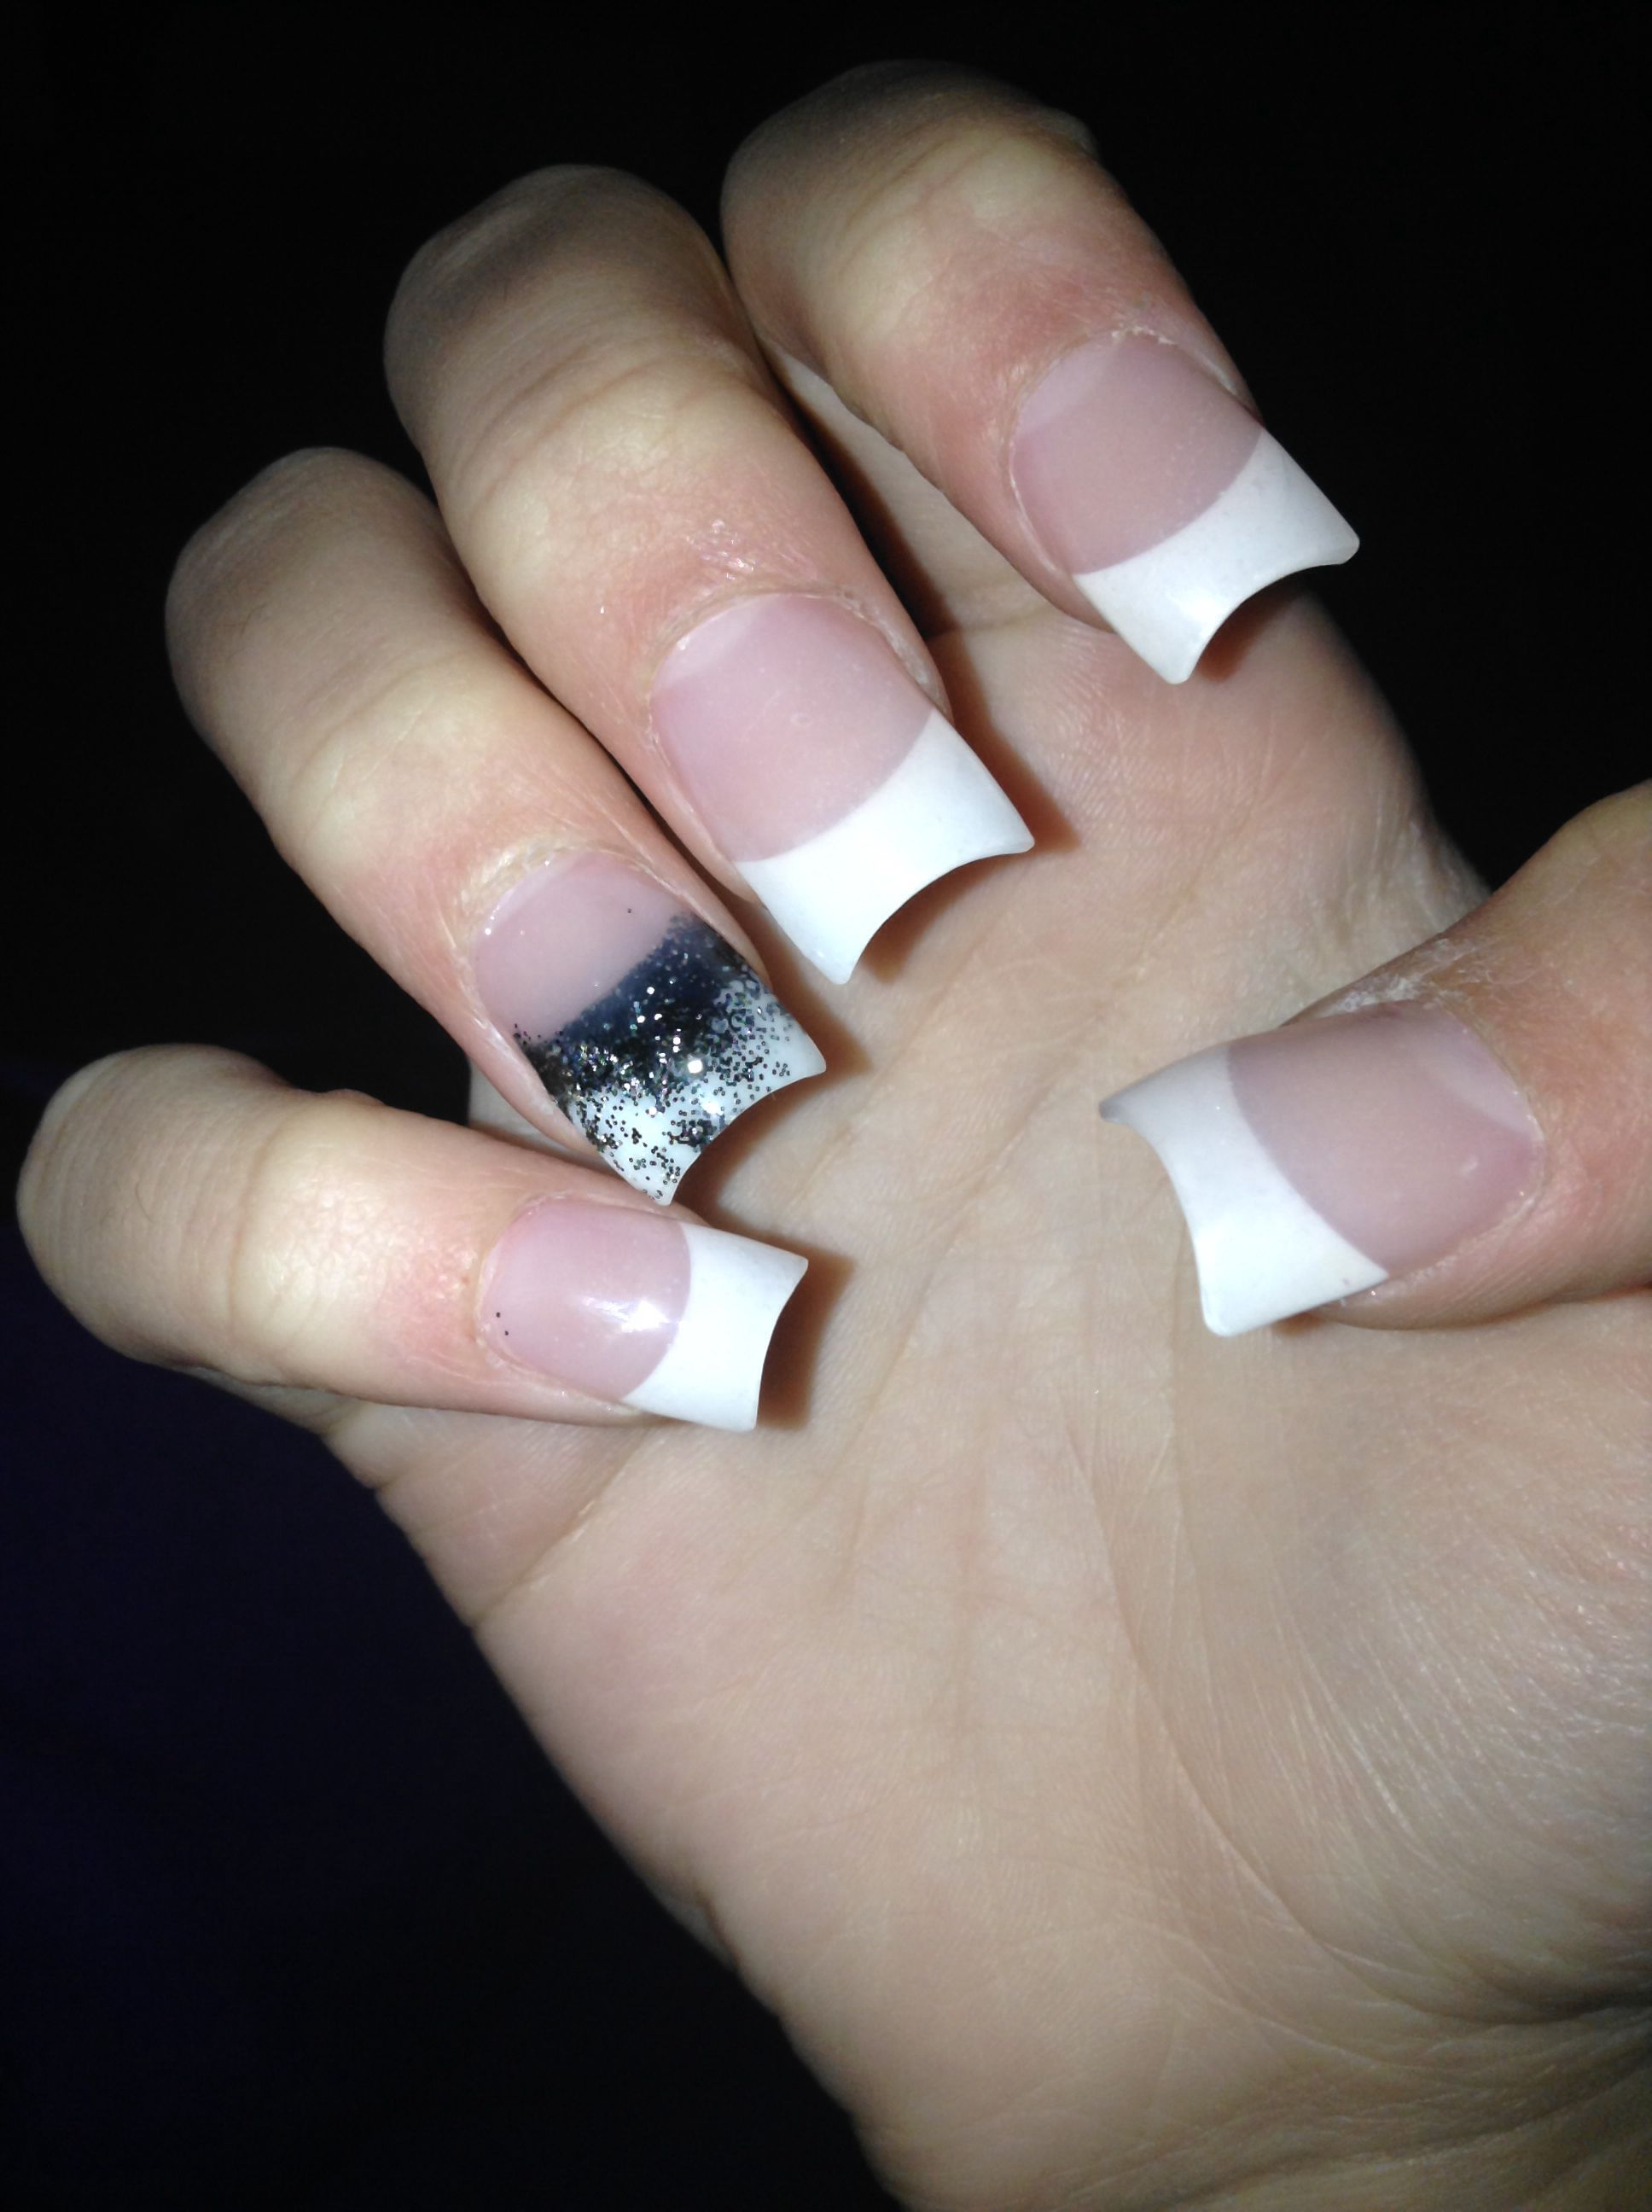 Cute Plain Nails Little Cly Acrylic Simple Nail Designs